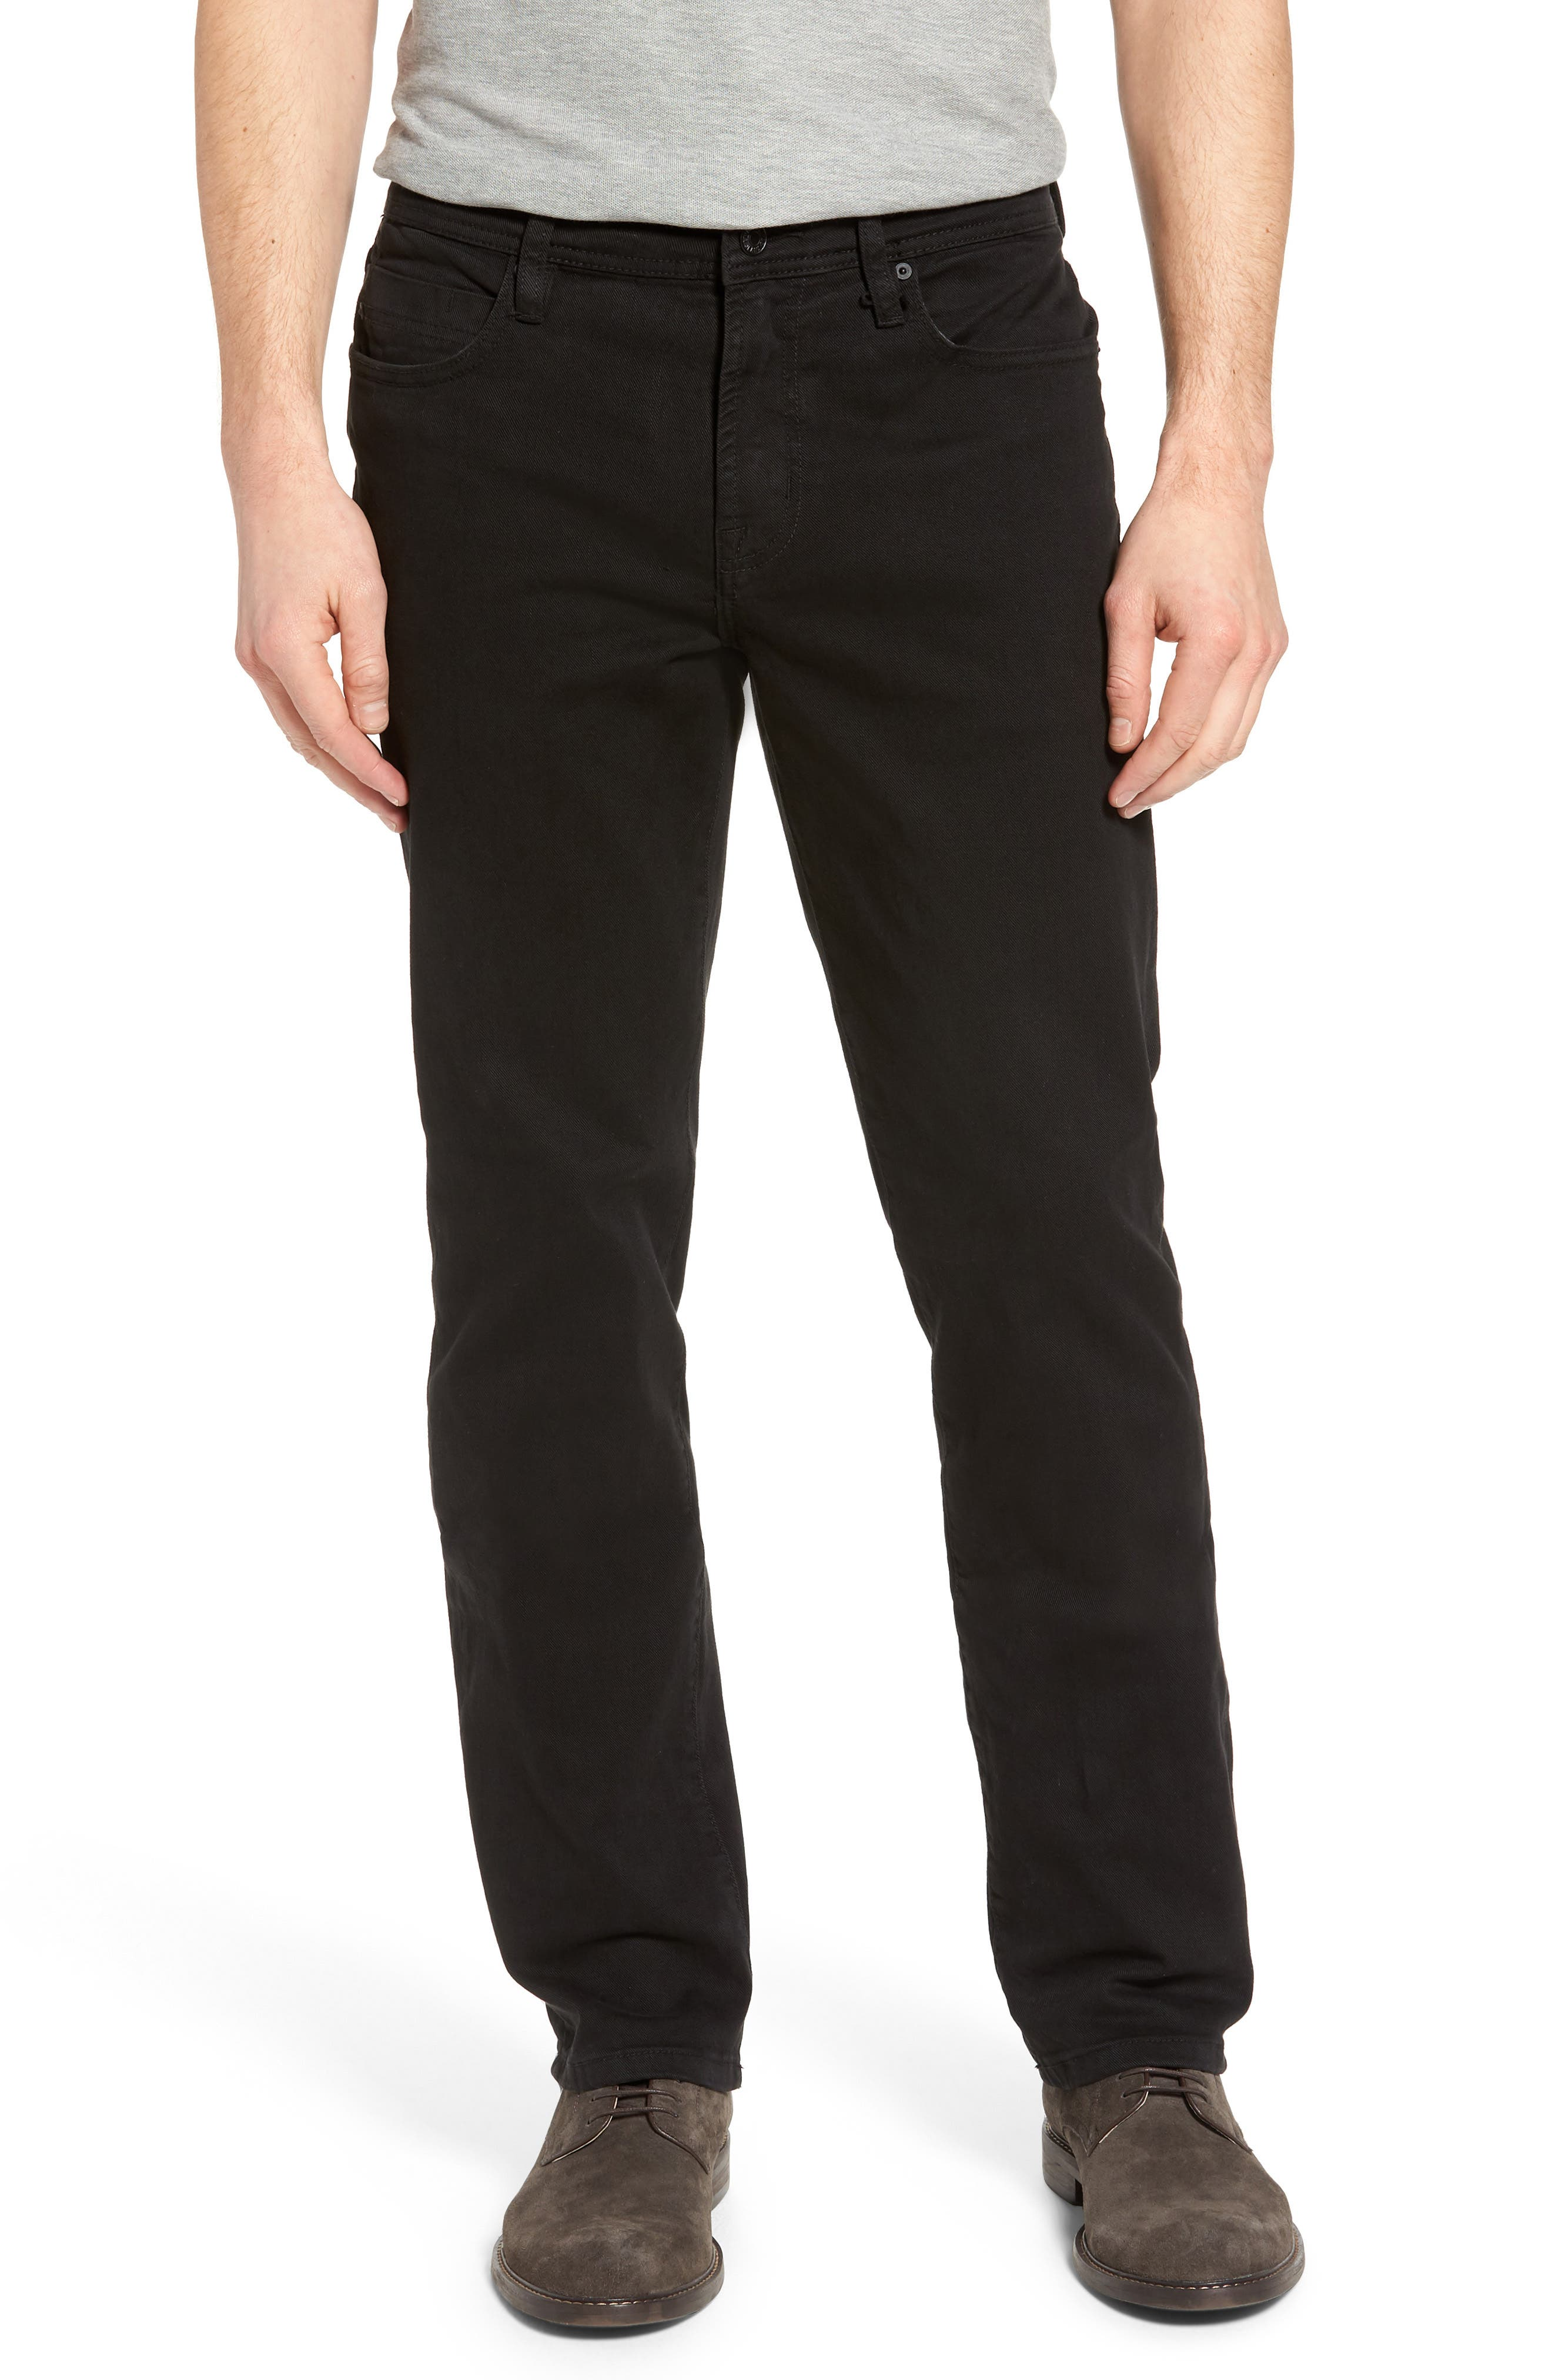 Liverpool Jeans Co. Regent Relaxed Fit Jeans (Black Rinse)